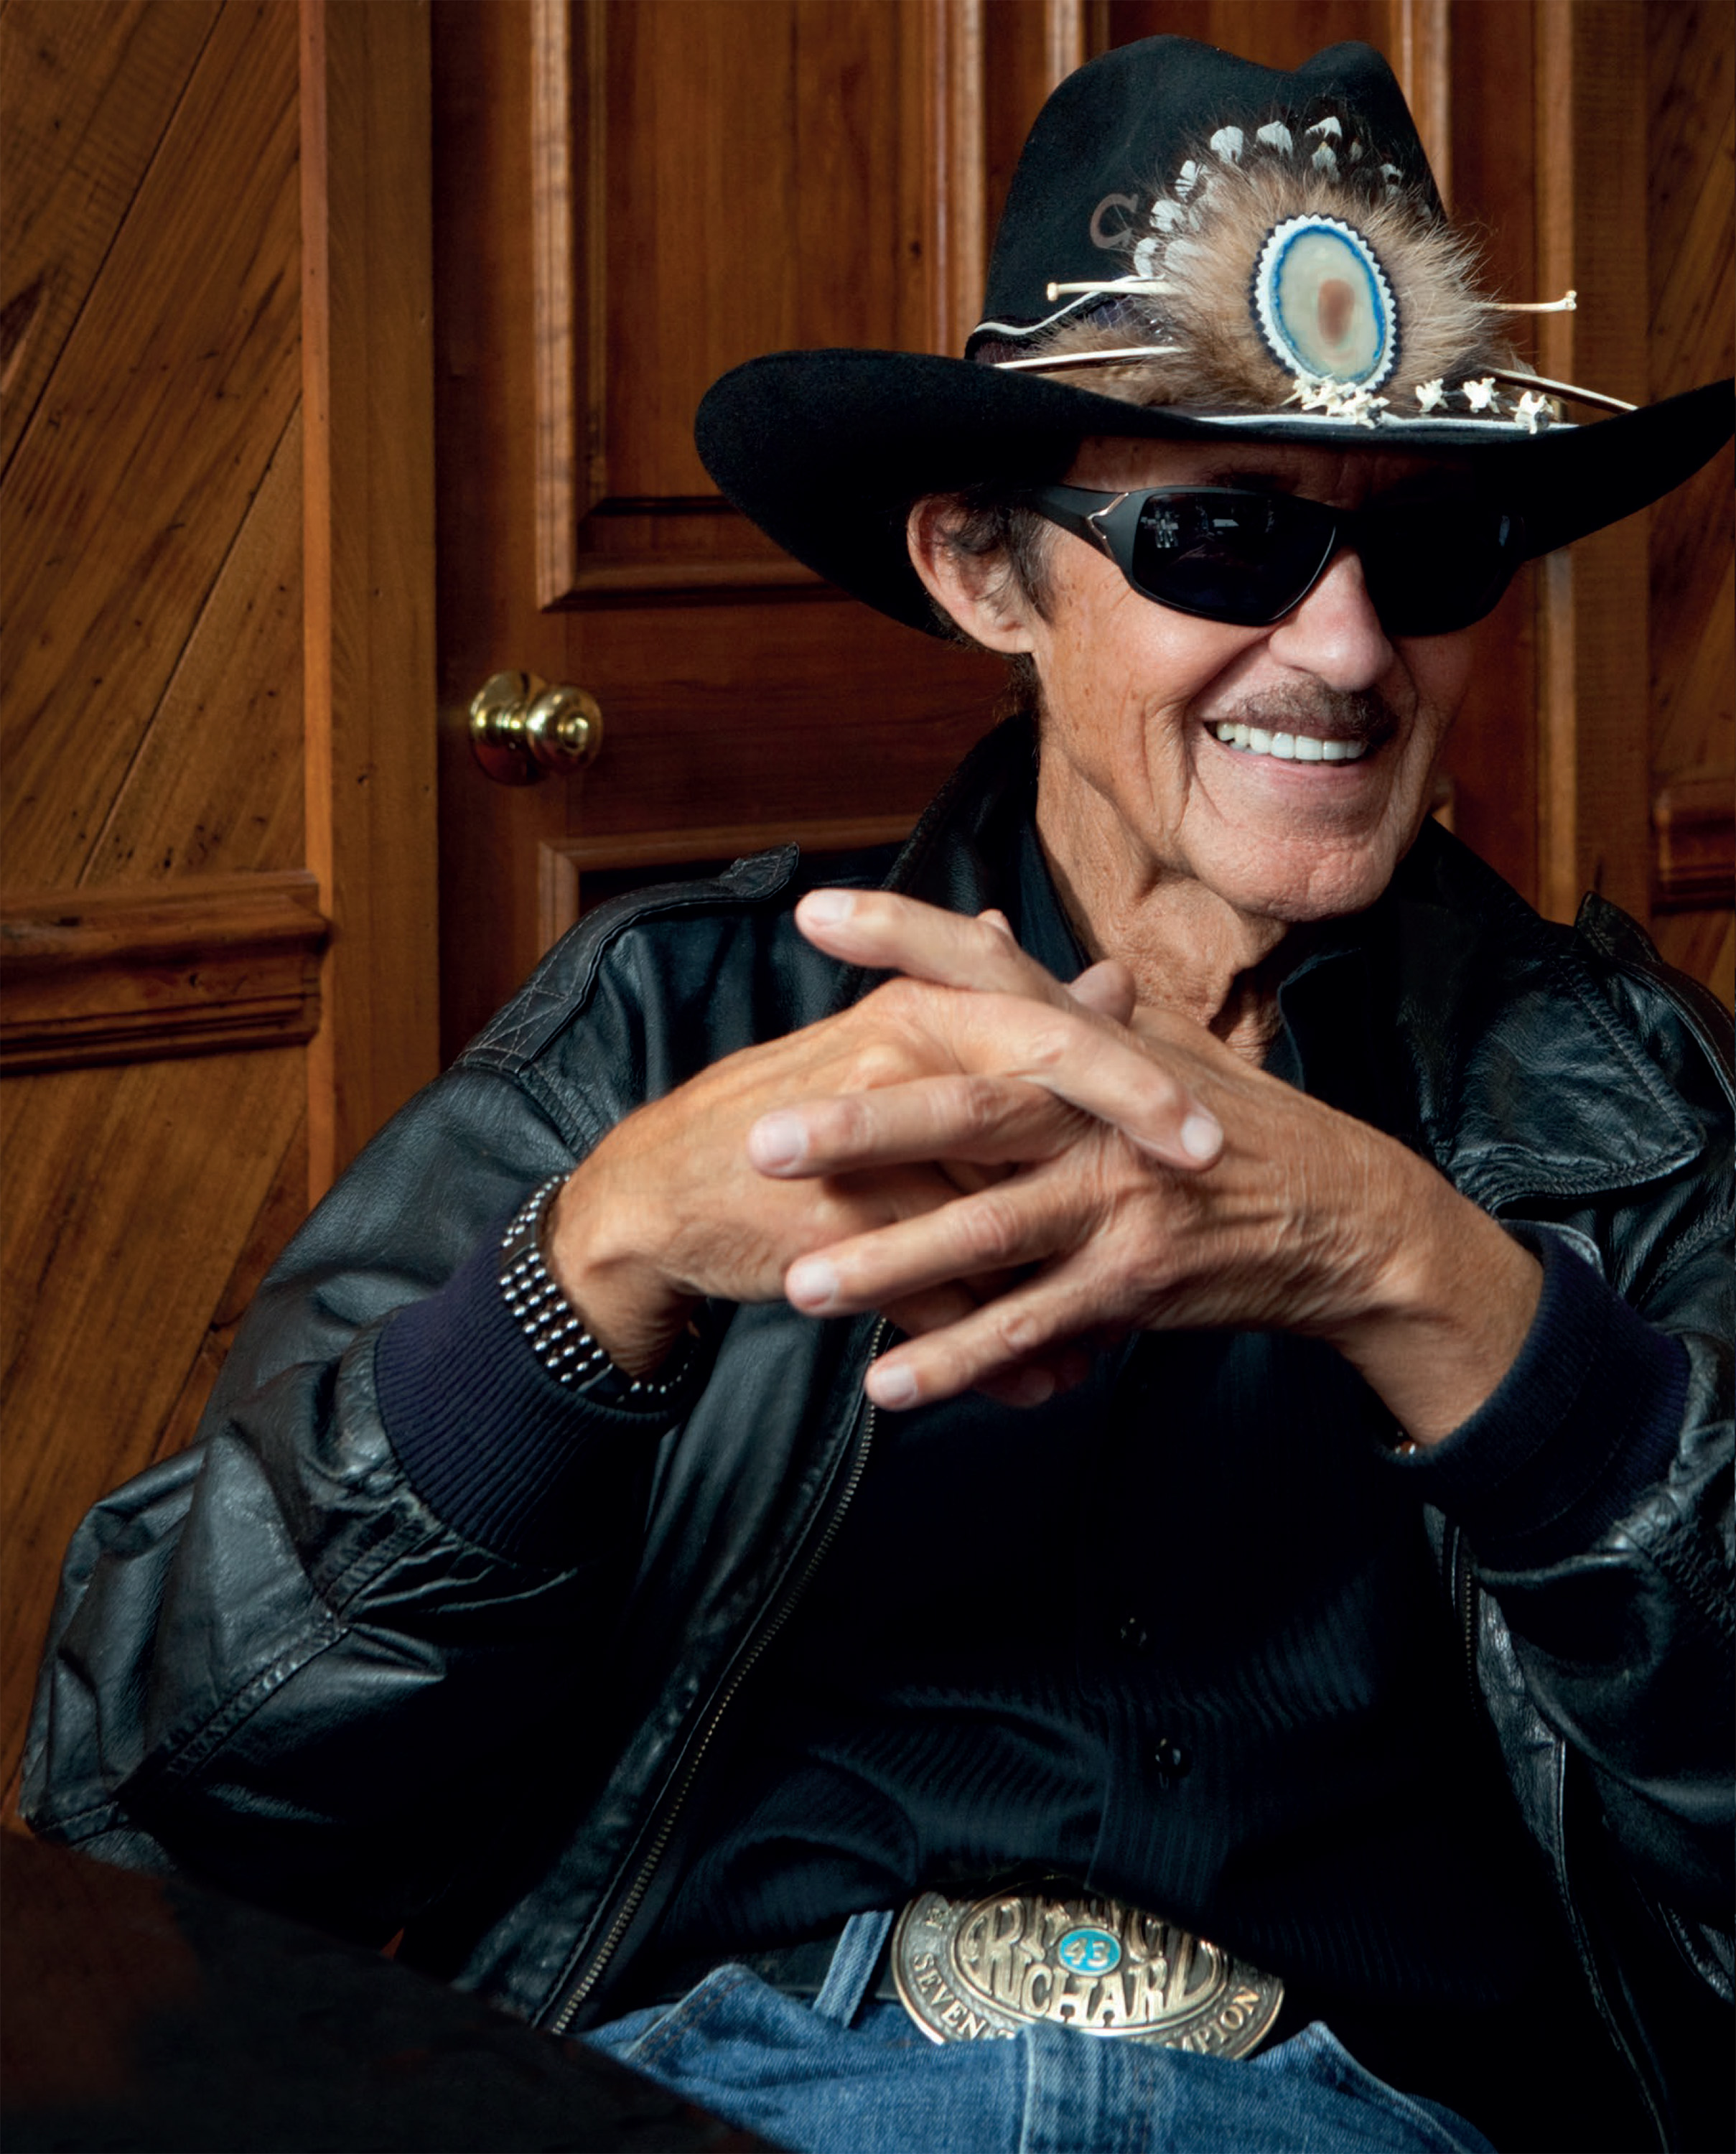 No Lunch With... Richard Petty image